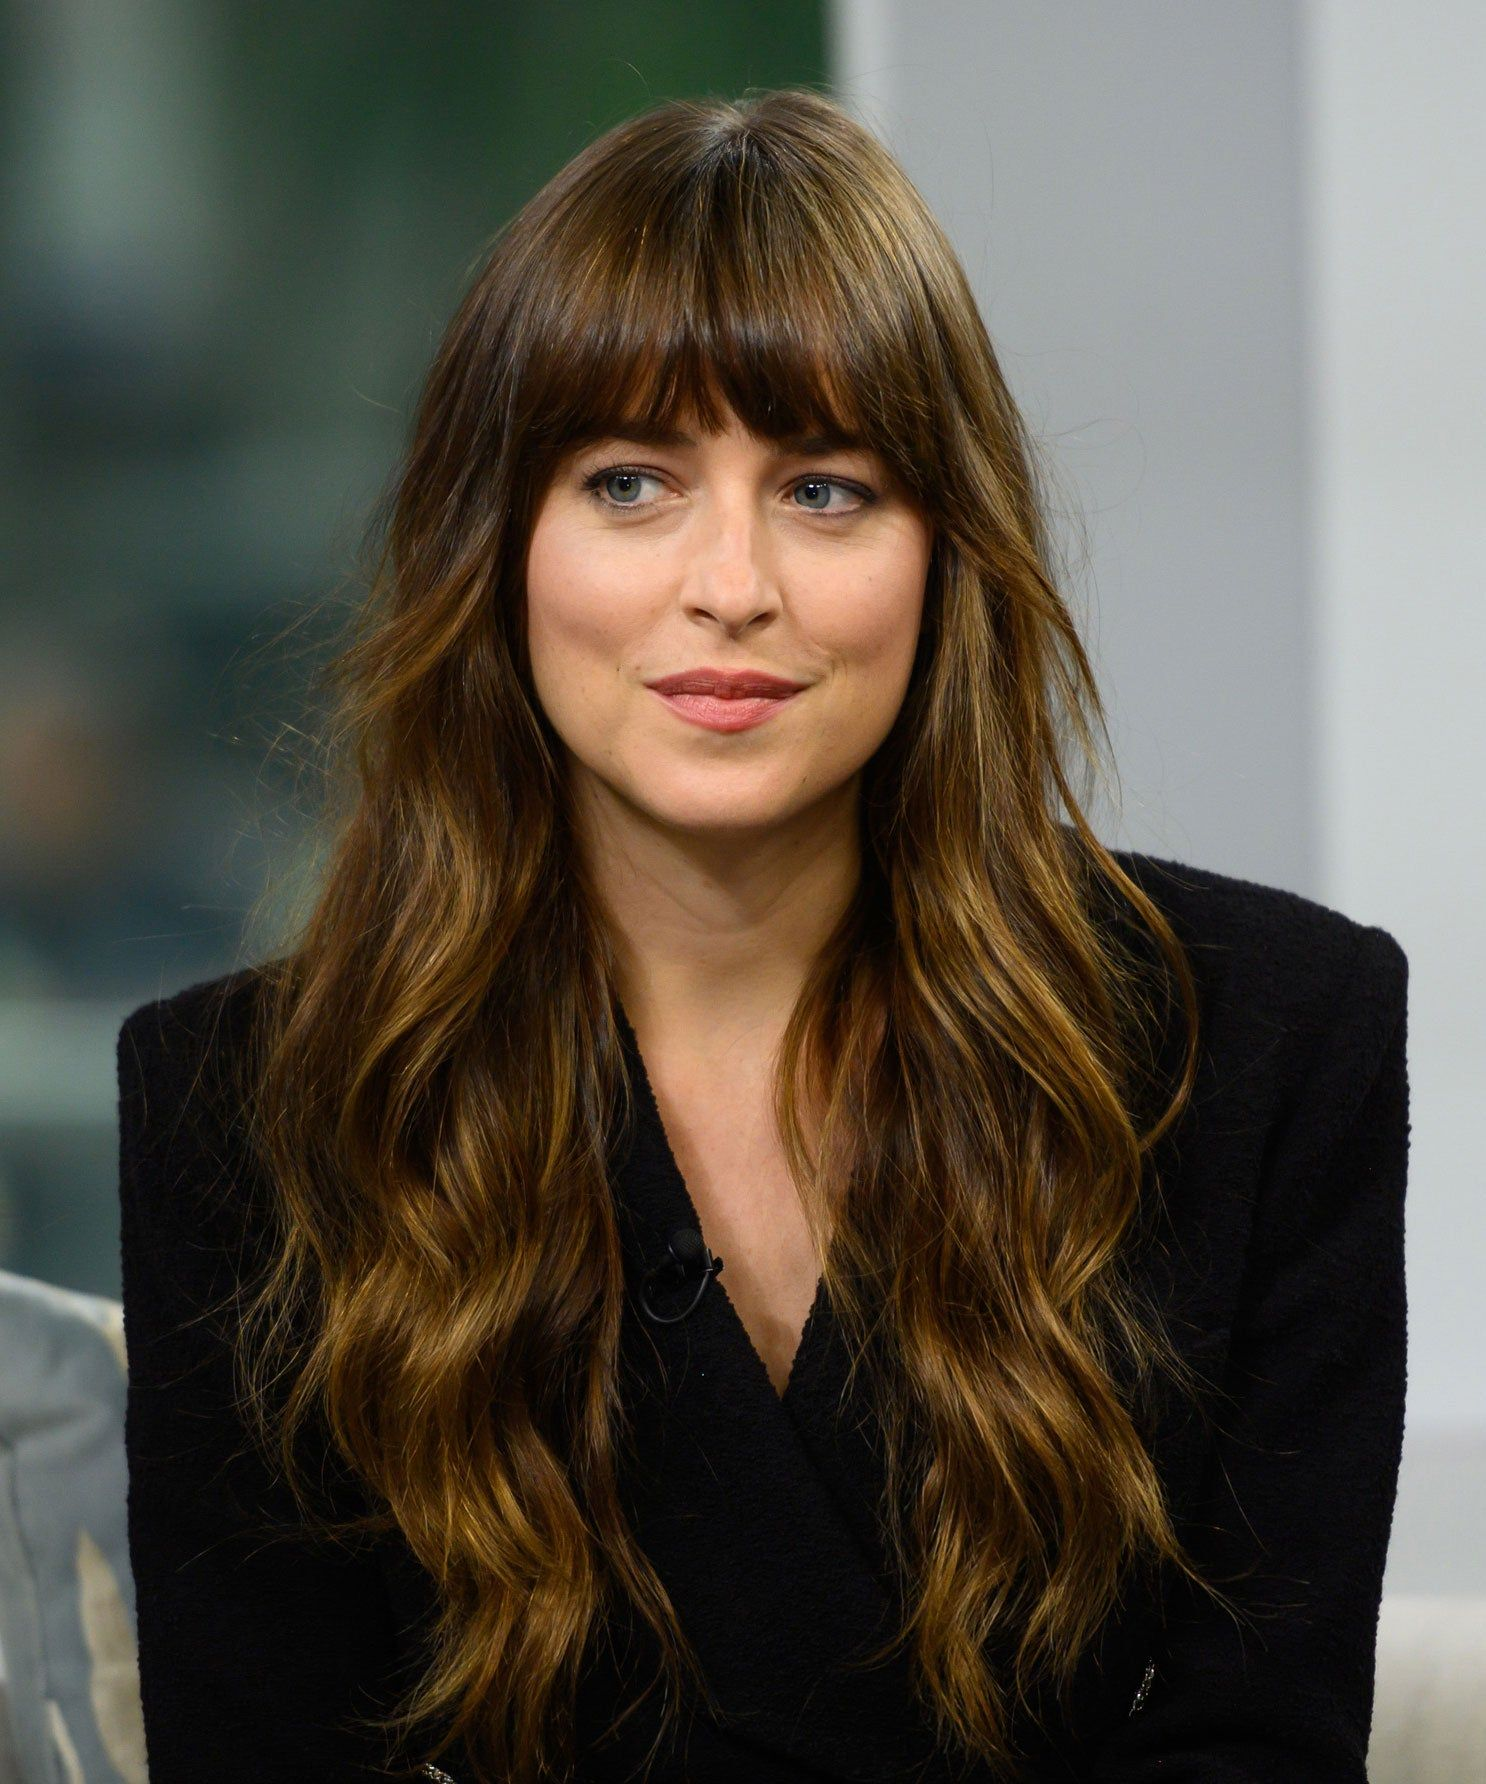 Dakota Johnson Opens Up About Her Mental Health In